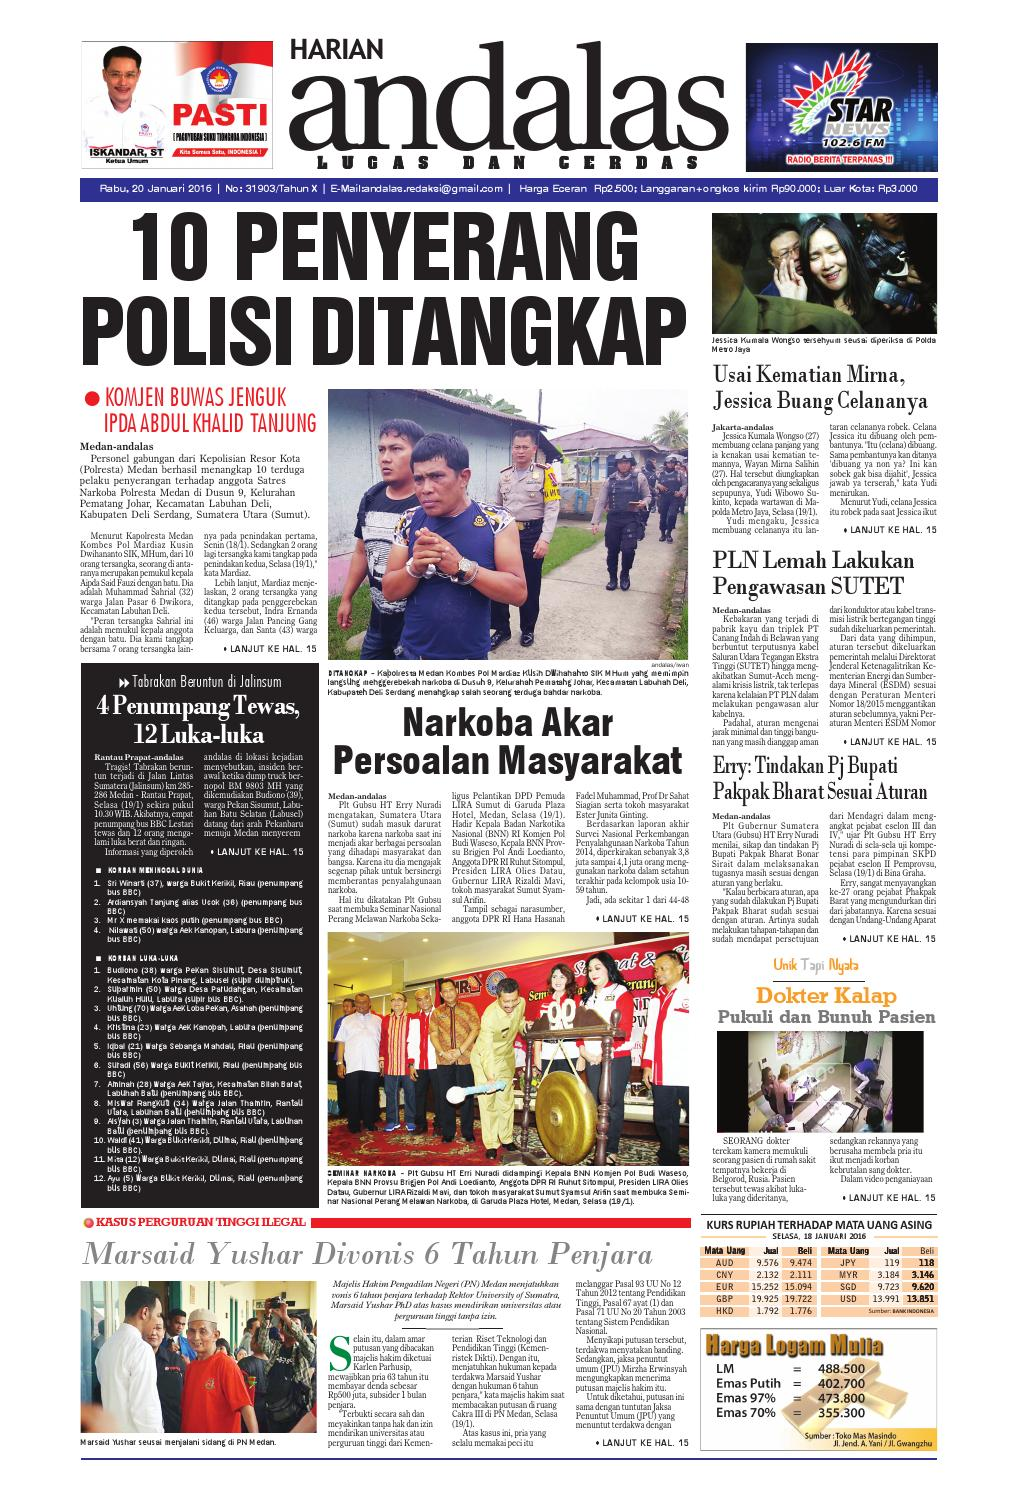 Epaper Andalas Edisi Rabu 20 Januari 2016 By Media Andalas Issuu